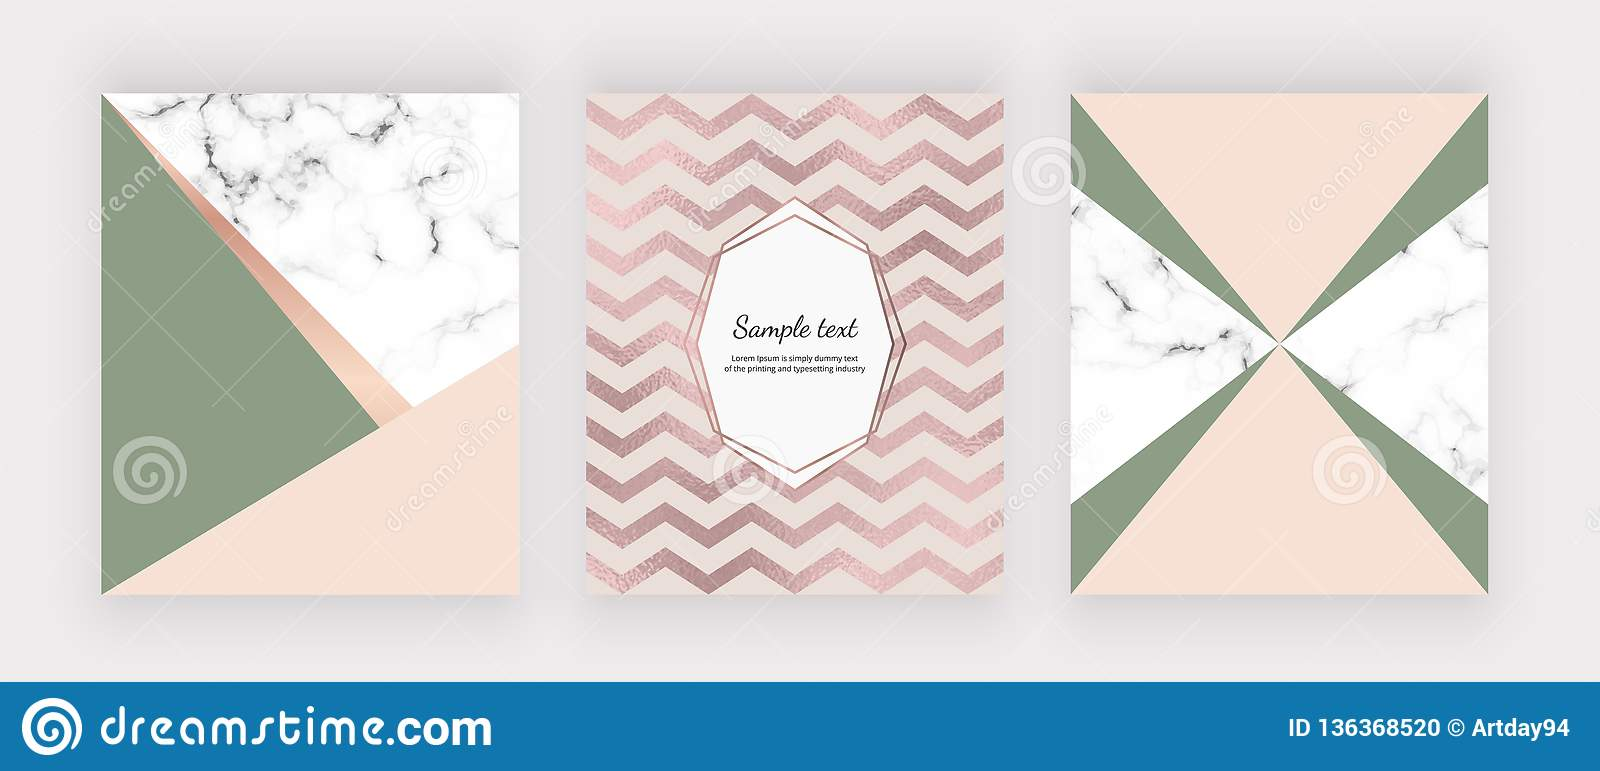 Marble geometric design with pink and green triangular, chevron foil texture. Modern templates for wedding invitation, banner, log